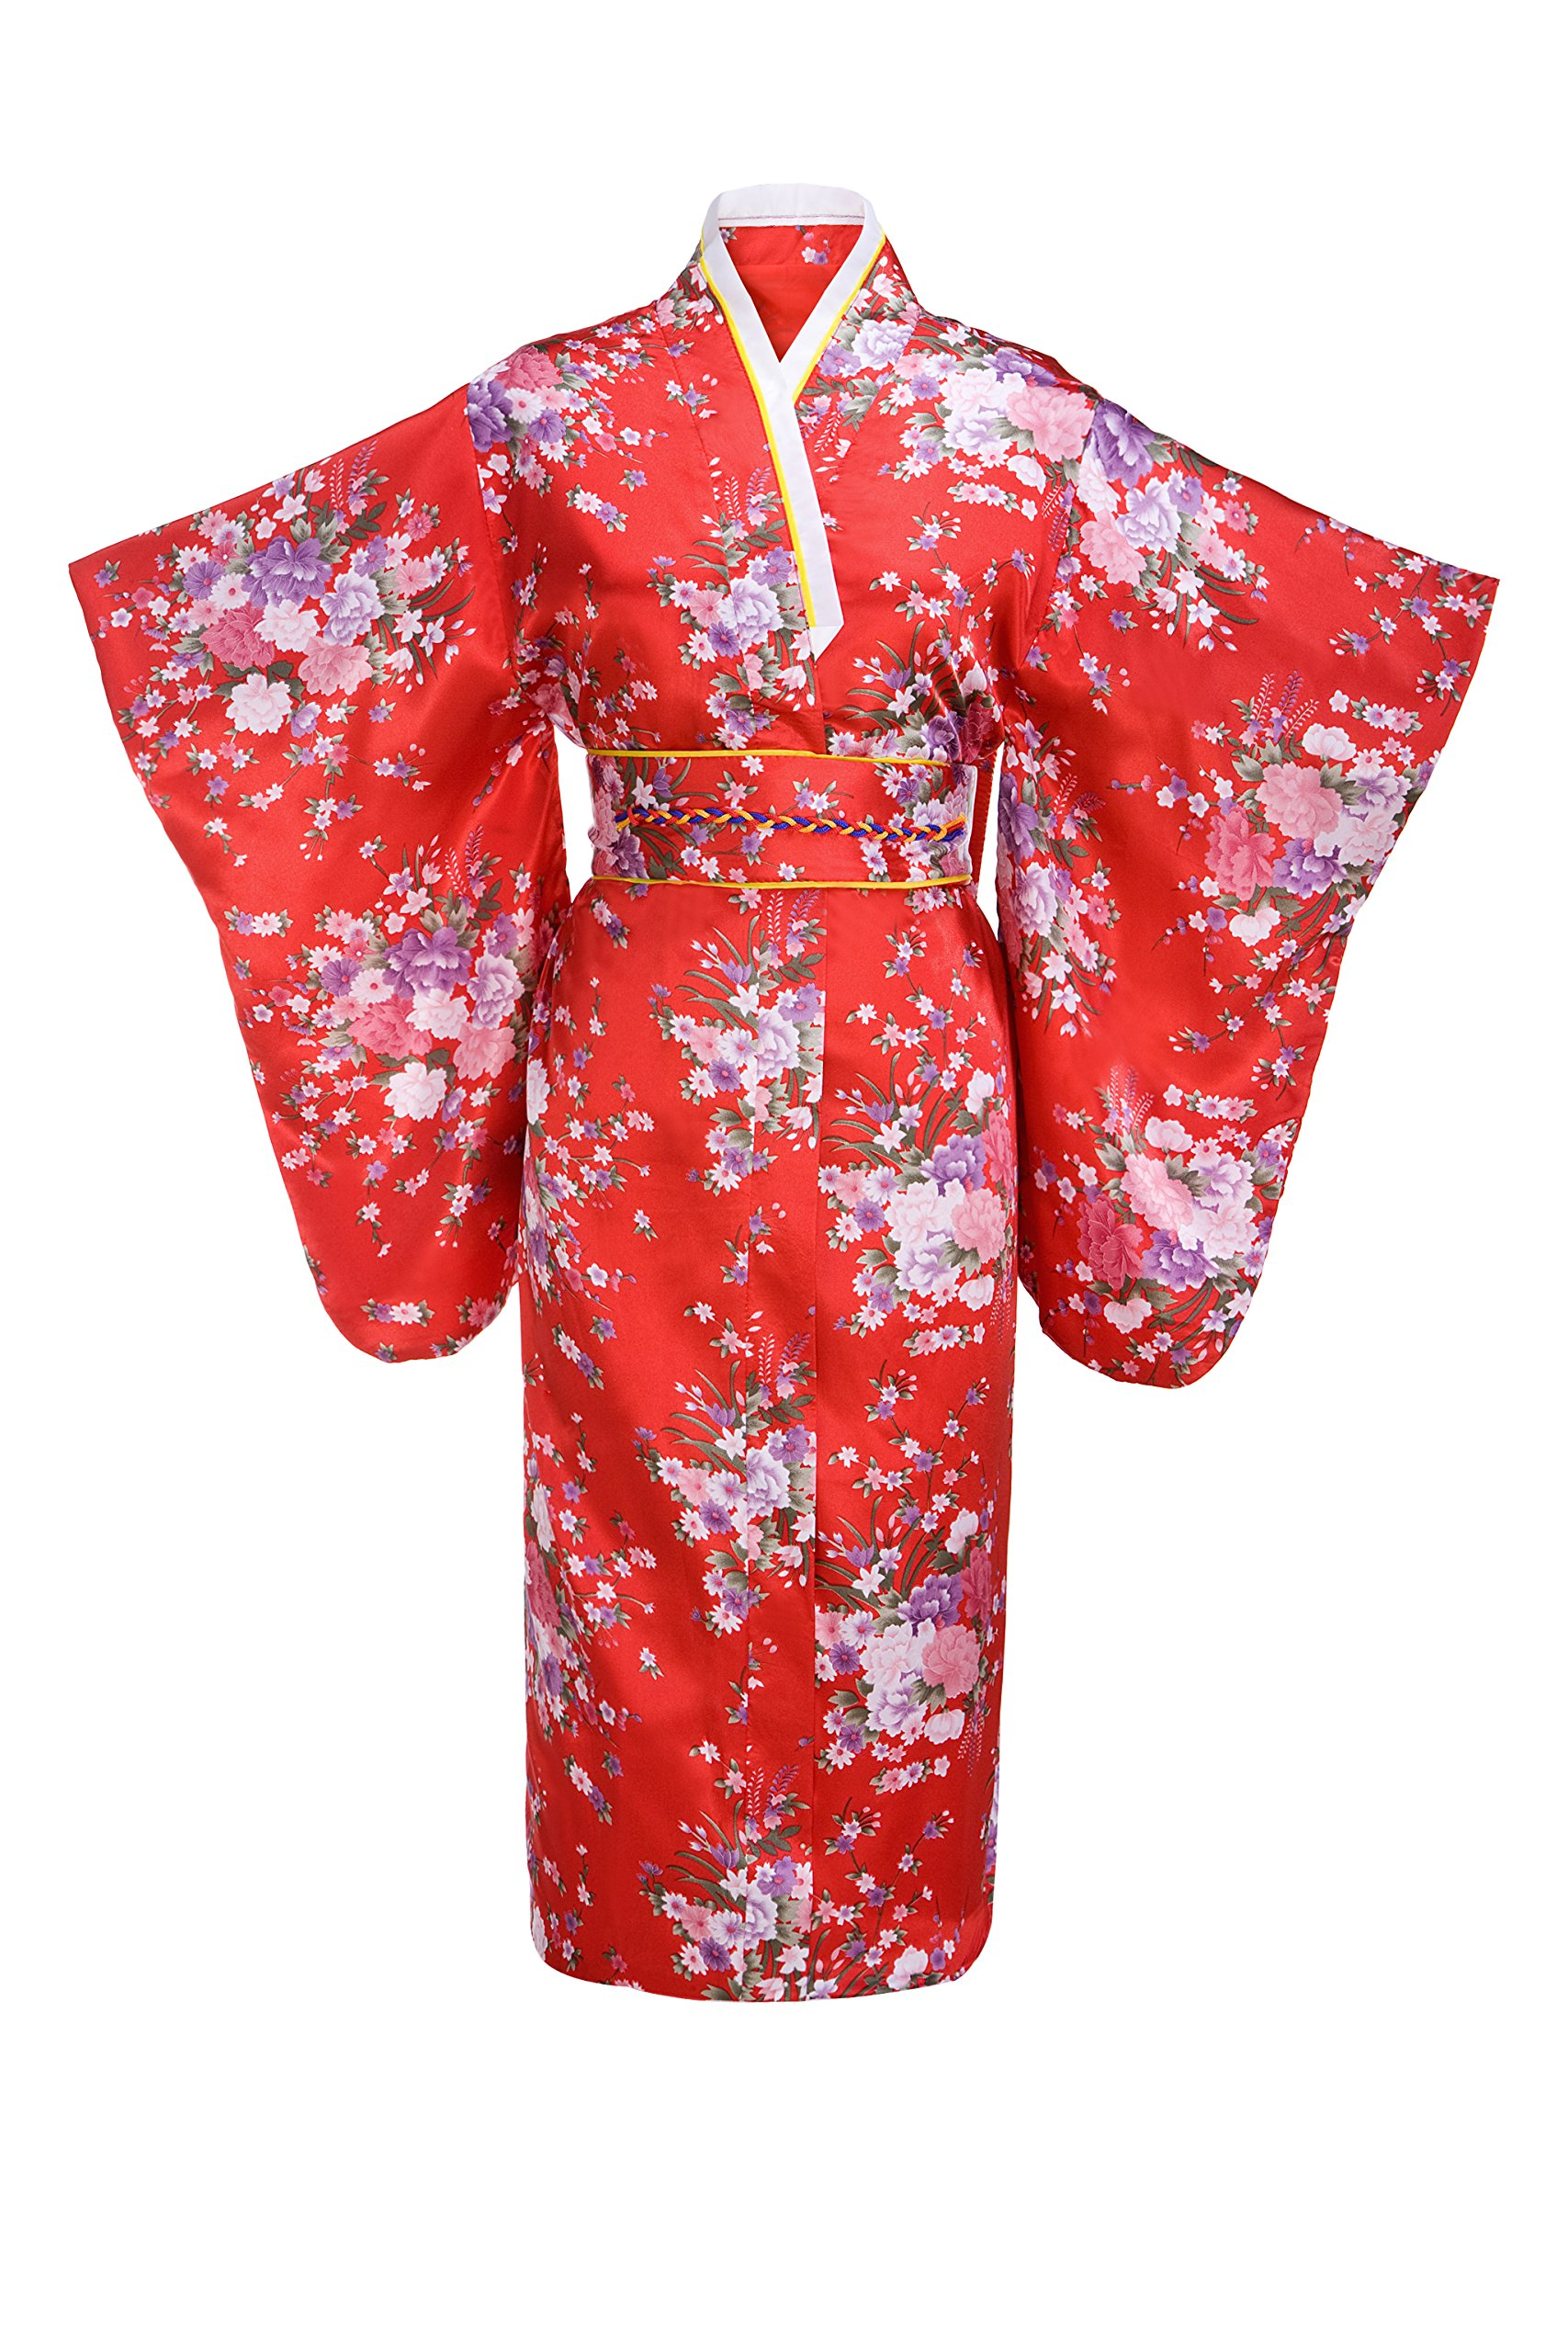 Old-to-new Women's Silk Traditional Japanese Kimono Robe With Floral Print Red